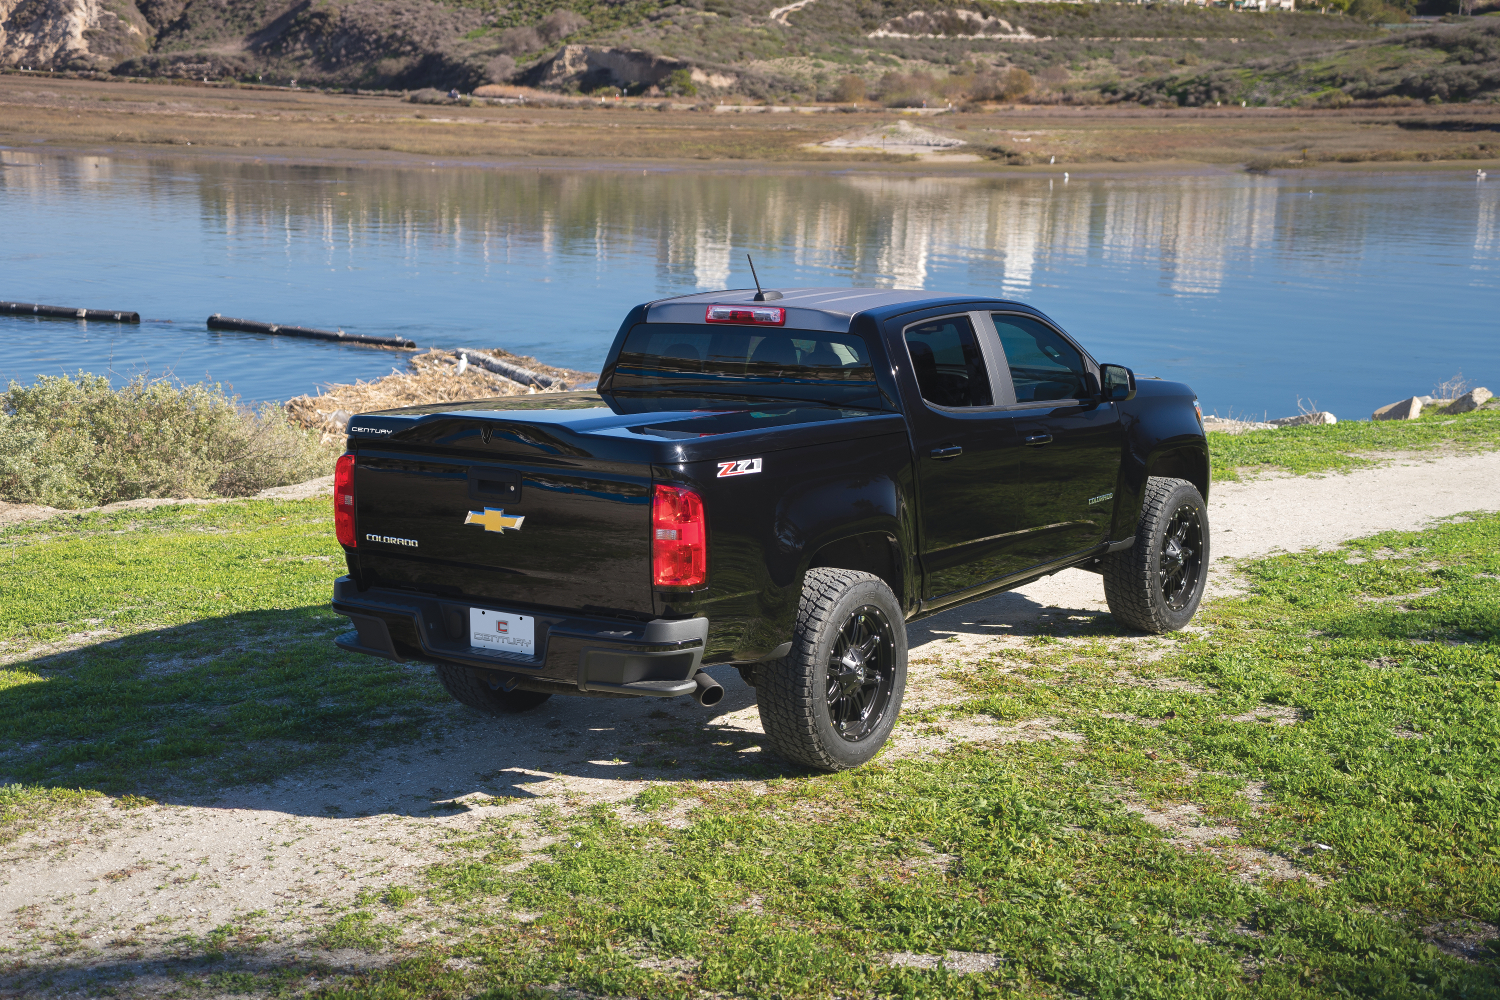 The Century Tonneau Cover Silhouette shown installed on a Chevrolet Colorado taken in front of a lake front.